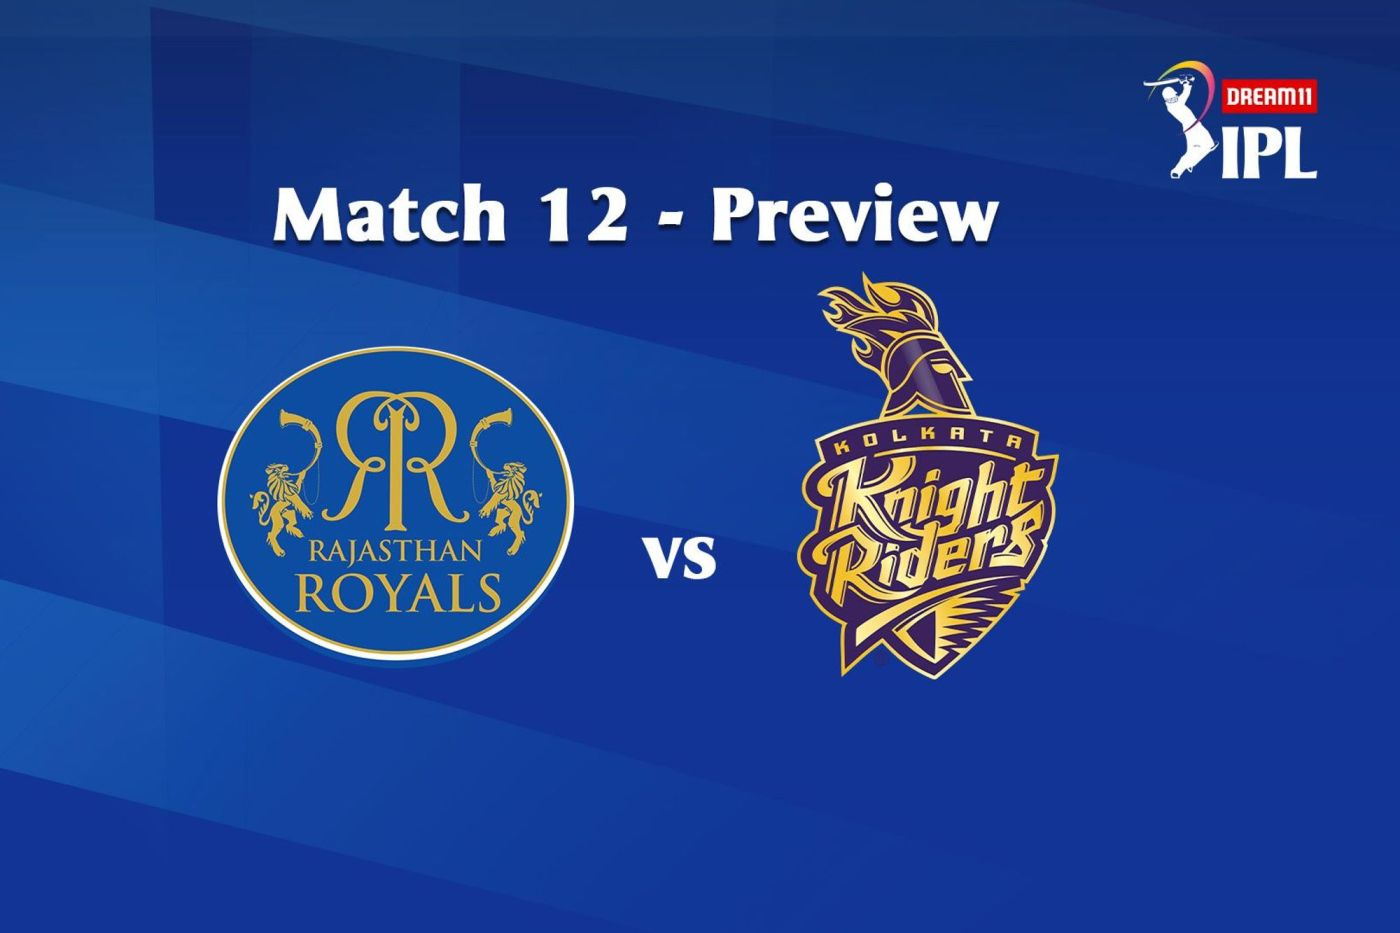 IPL Match 12 2020: Rajasthan Royals Take On Kolkata Knight Righters Today, Who Will Win?